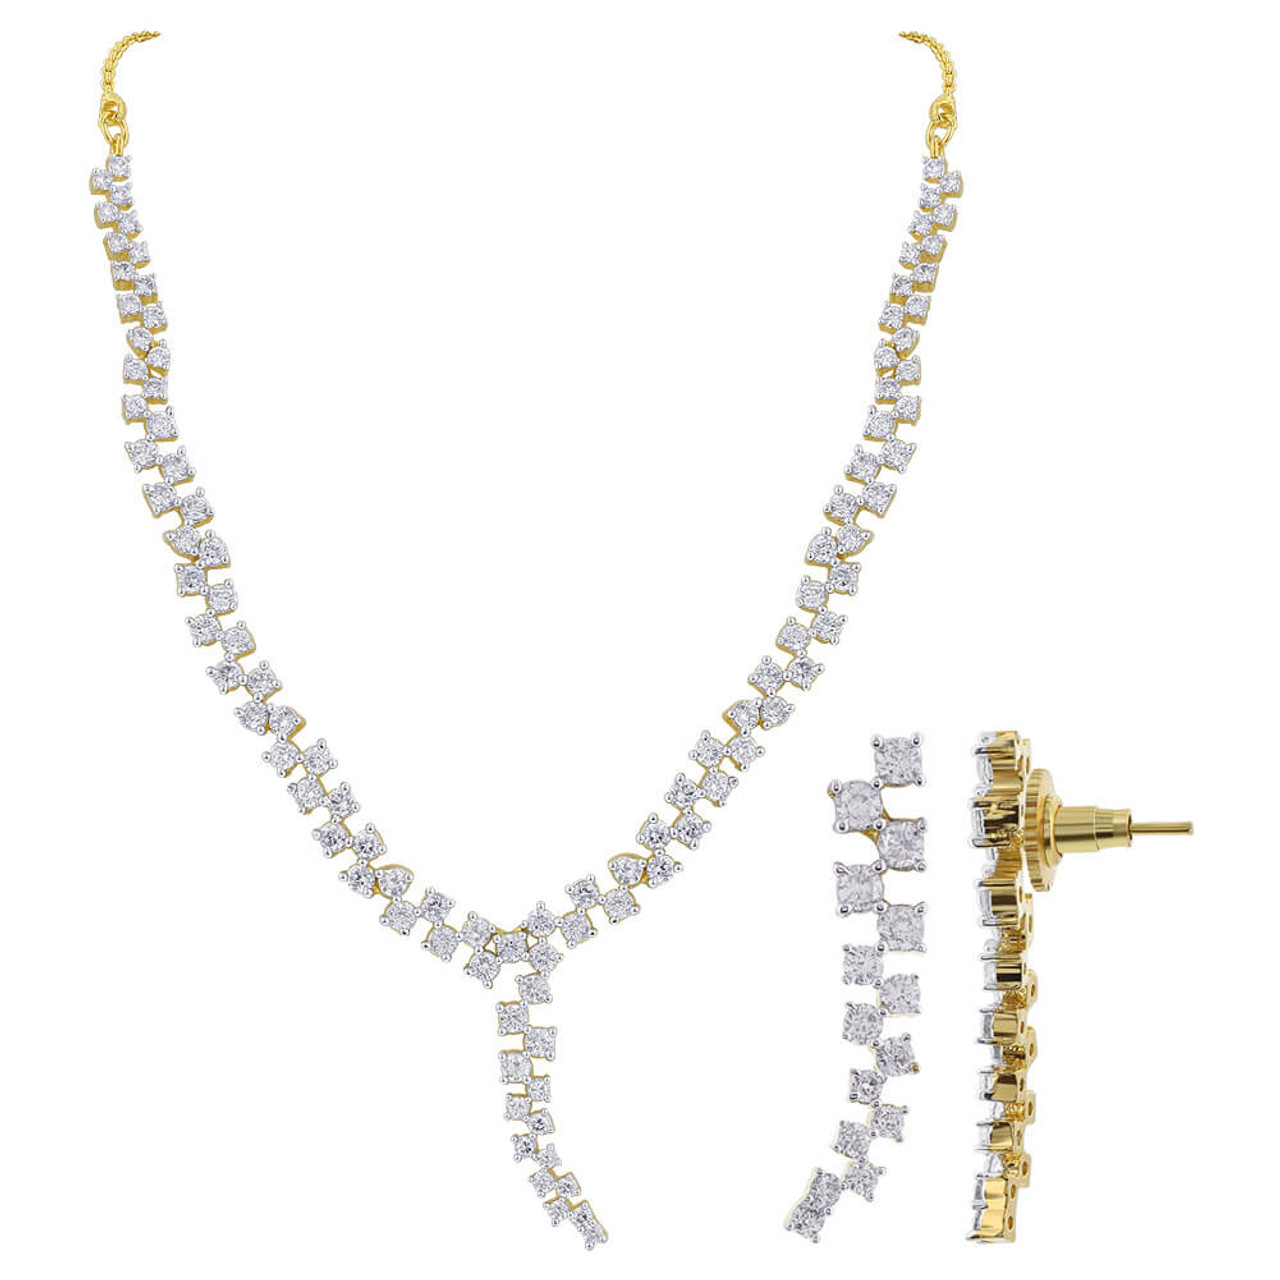 Gold Plated Clear Cubic Zirconia Necklace Earrings Set